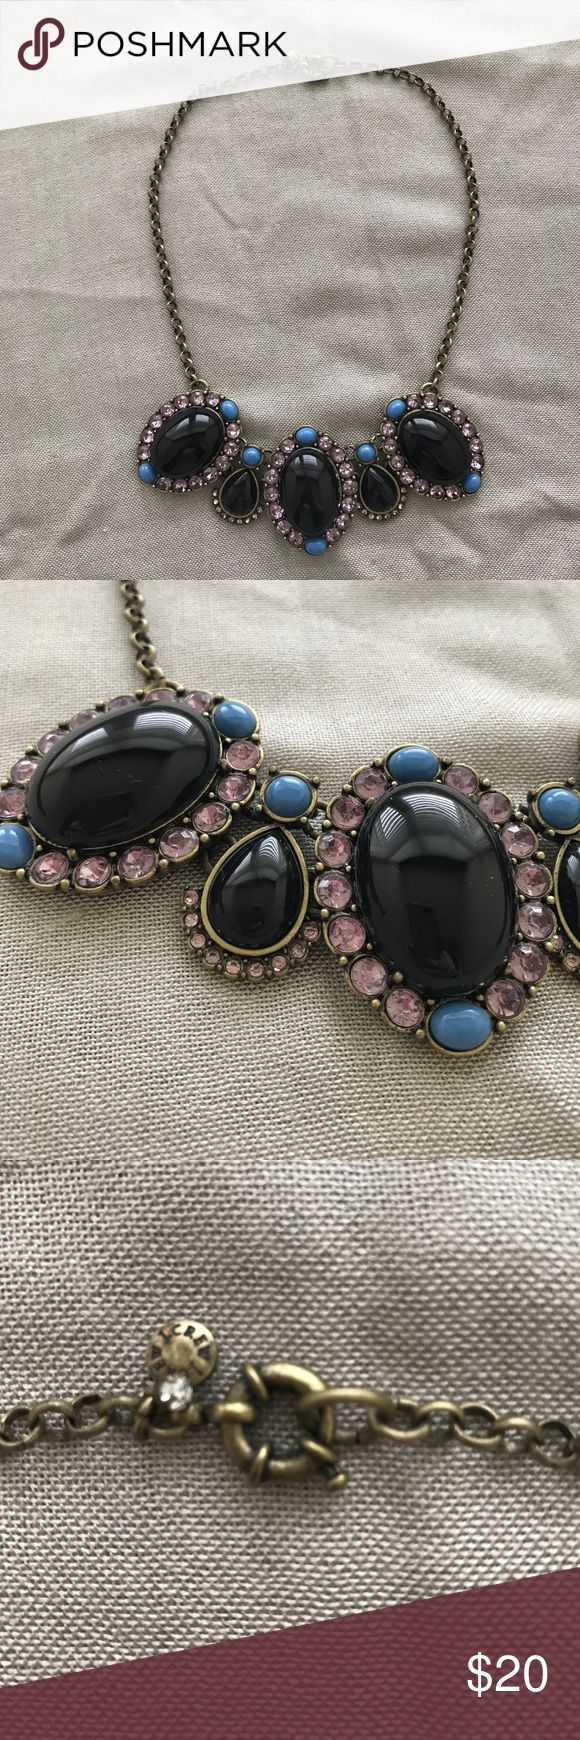 """J Crew necklace J Crew statement necklace with a design made of black enamel ovals surrounded by blue enamel and lavender rhinestones. 18"""" overall length J. Crew Jewelry Necklaces"""